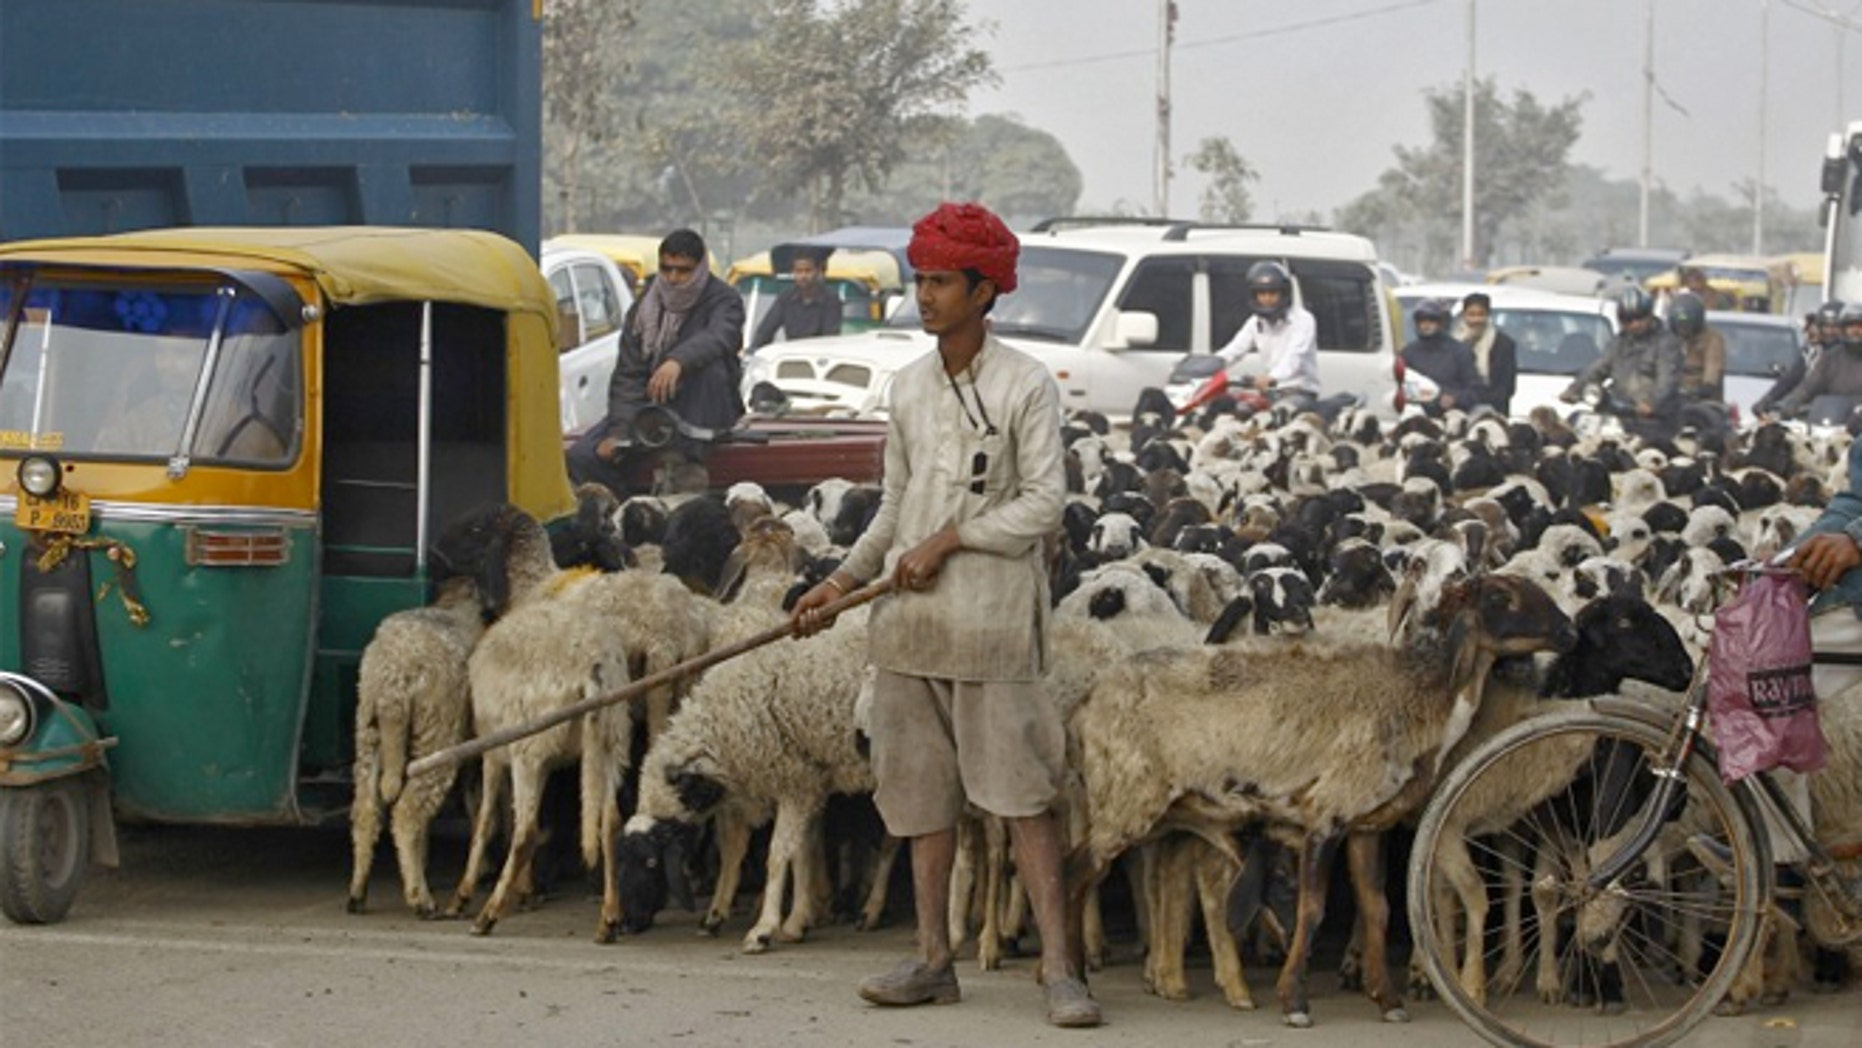 A shepard and his flock in the middle of traffic outside Delhi, India.